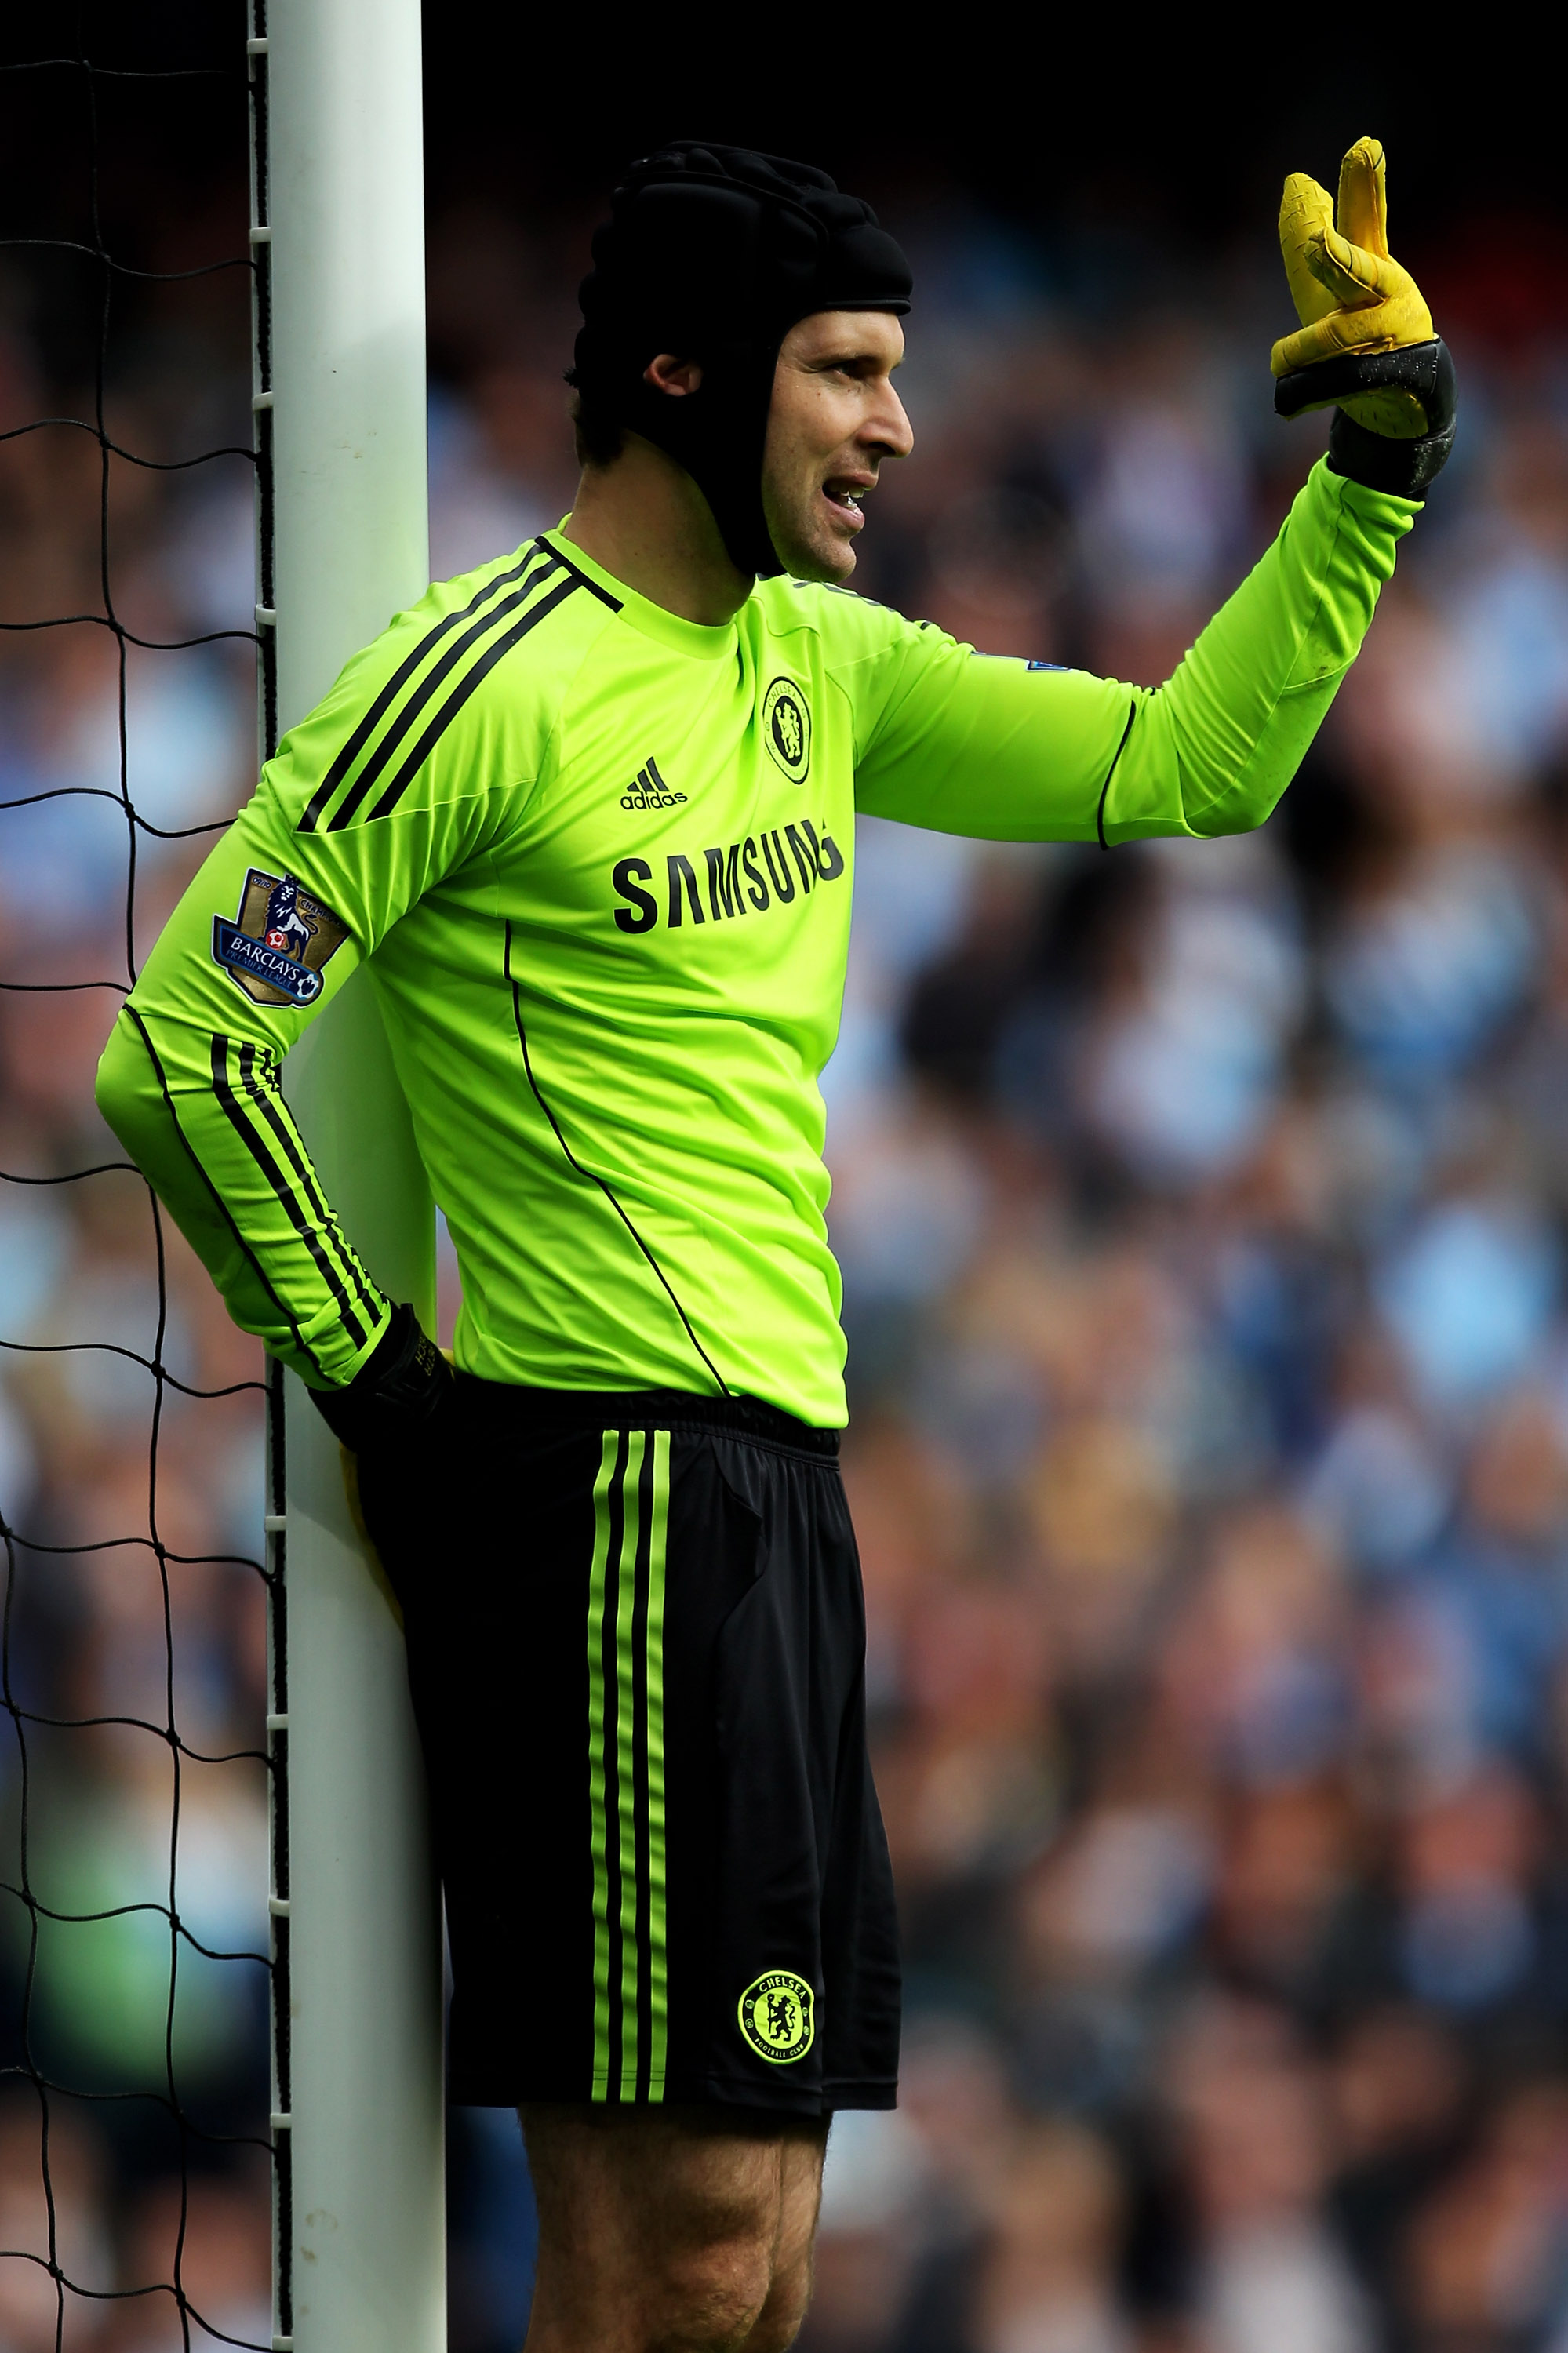 MANCHESTER, ENGLAND - SEPTEMBER 25:  Petr Cech of Chelsea gestures during the Barclays Premier League match between Manchester City and Chelsea at the City of Manchester Stadium on September 25, 2010 in Manchester, England.  (Photo by Alex Livesey/Getty I